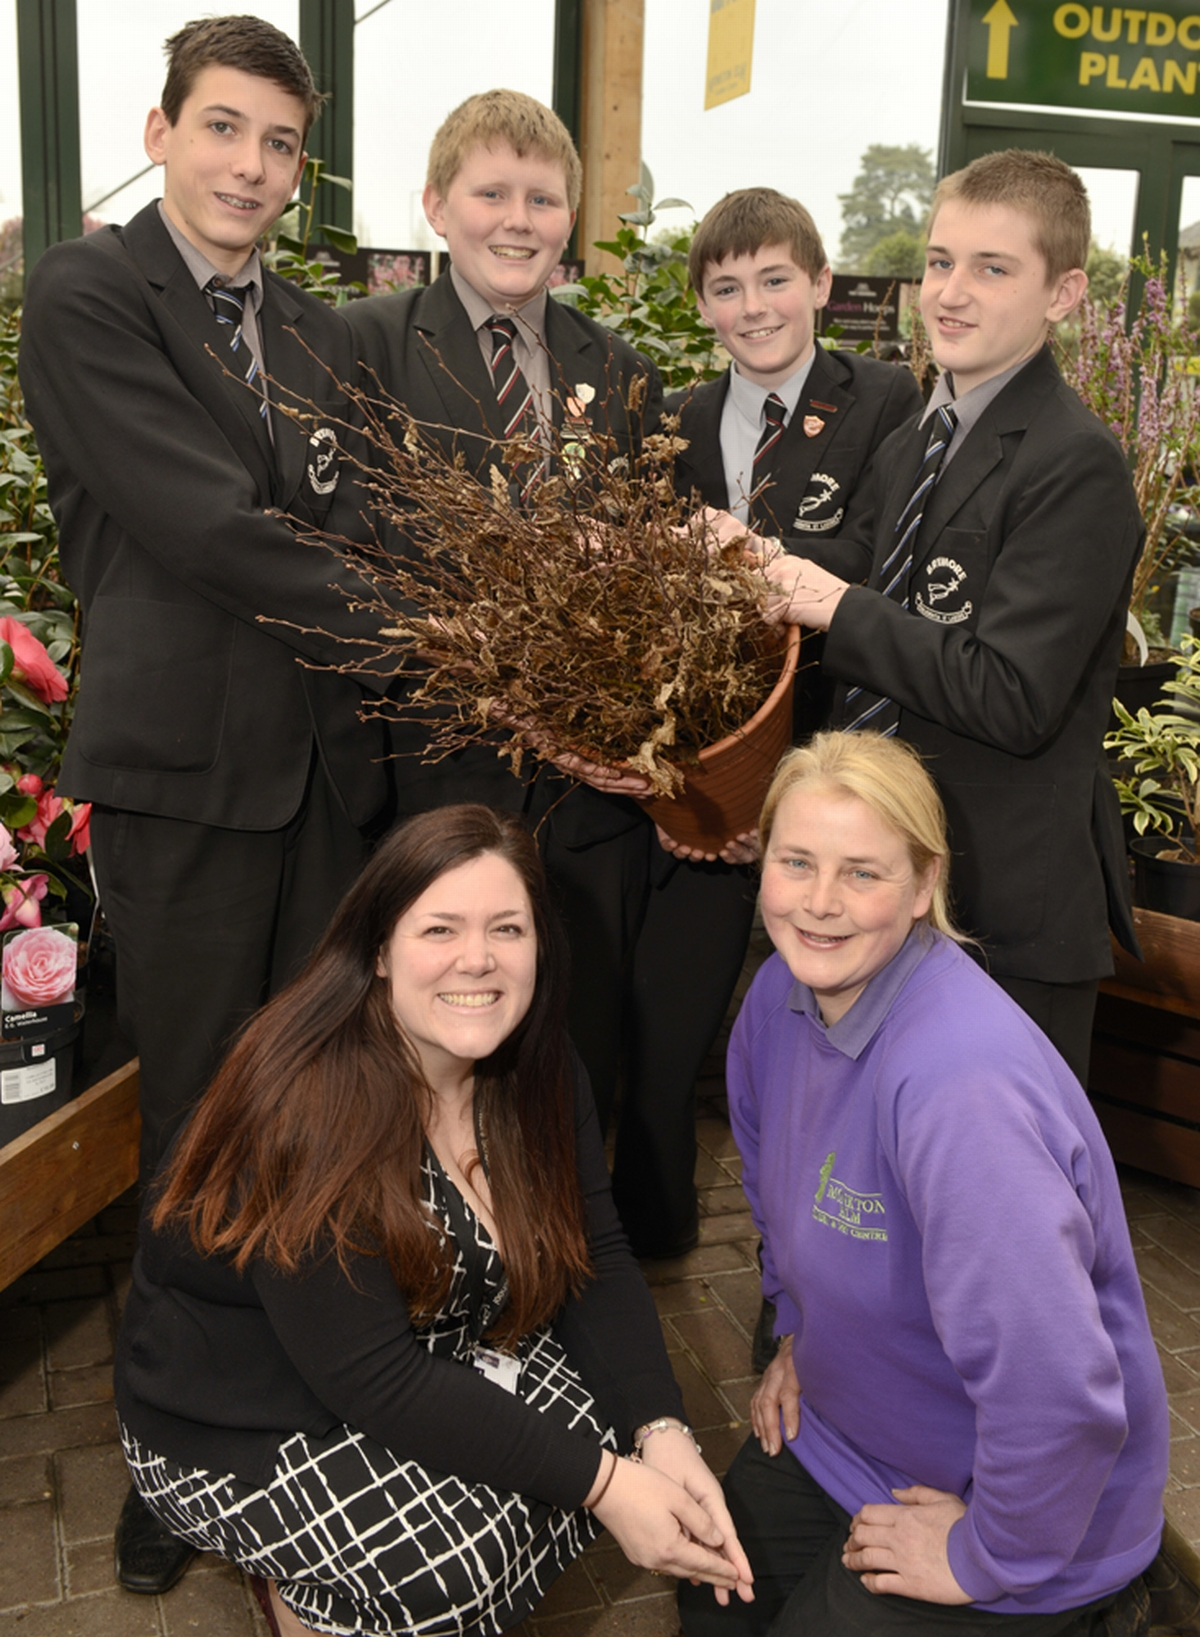 (Bottom left) Lorraine Warren, marketing manager at Brymore School and (top left to right) Ben Harris, 14, Charles Coleman, 15, Will Waind, 14, and Henry Phillips, 15, collect their saplings from (bottom right) Fiona Smart, head of plants.